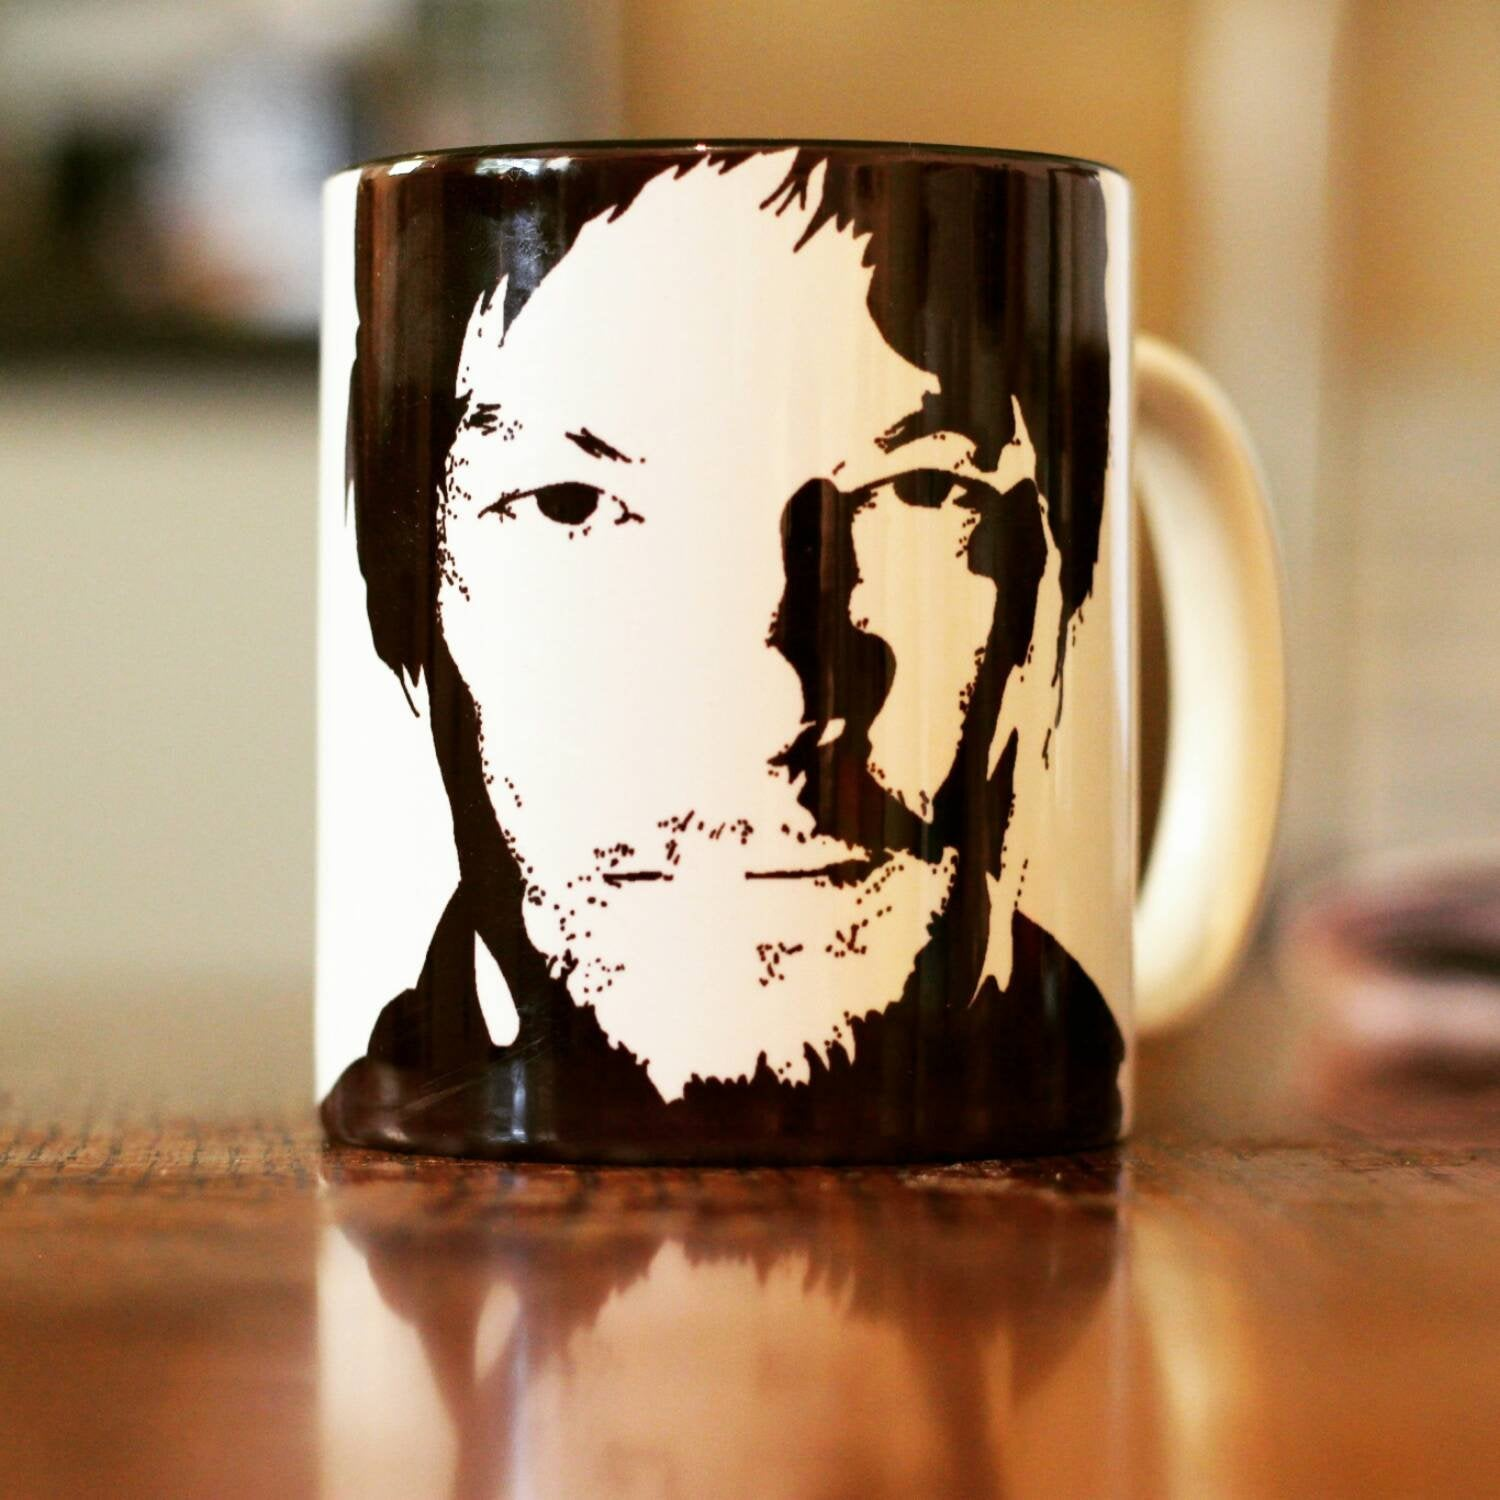 Andrew Linciln, Rick grimes, The Walking Dead, Love Actually, Hand Printed cup - ByCandlelight27